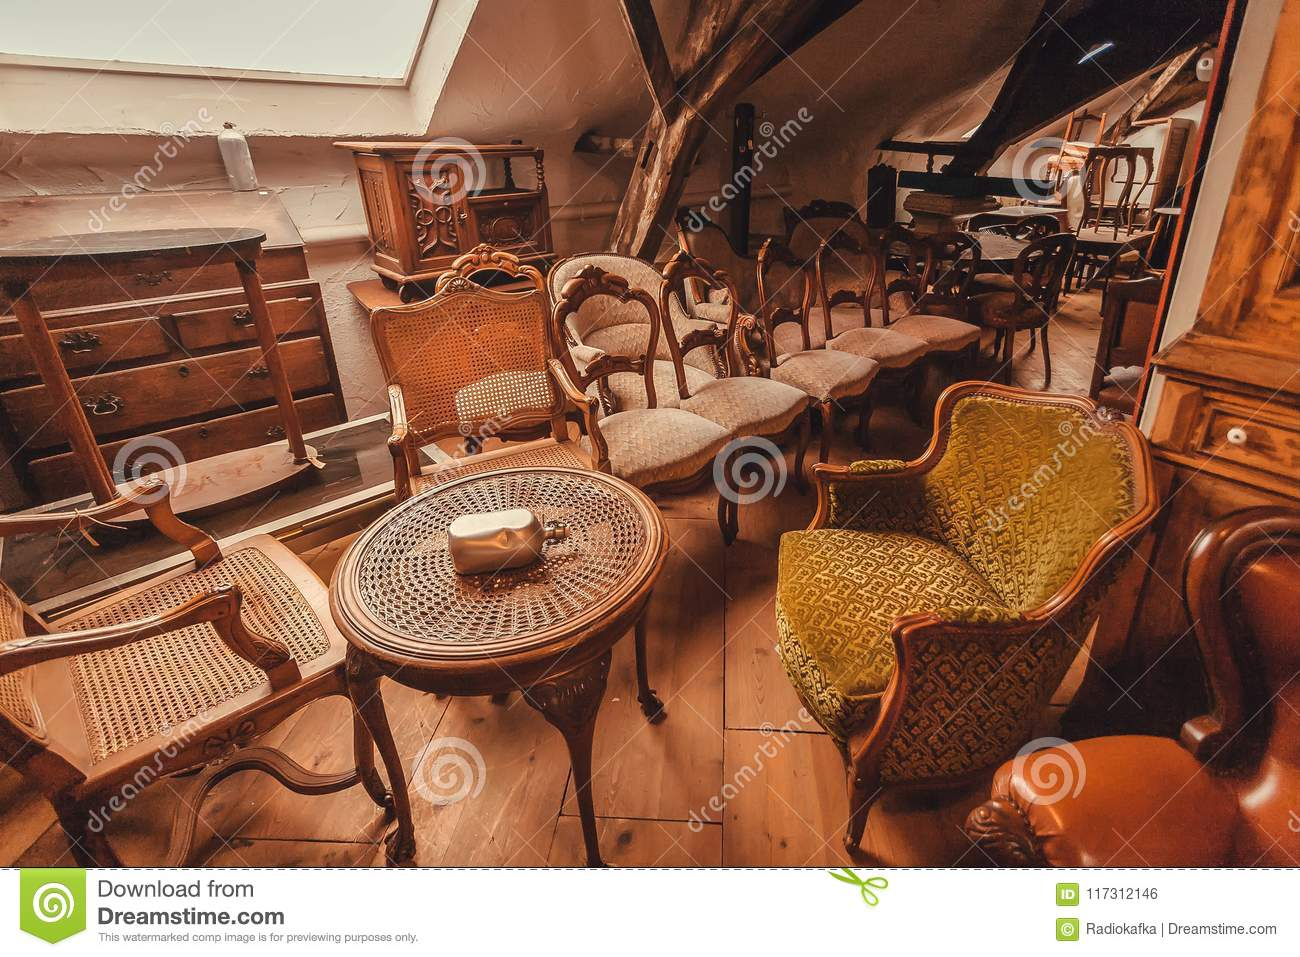 Antique Metal Tables Vintage Armchairs Decoration Wooden Furniture And Retro Details Of Old House Editorial Photo Image Of Armchair Artistic 117312146